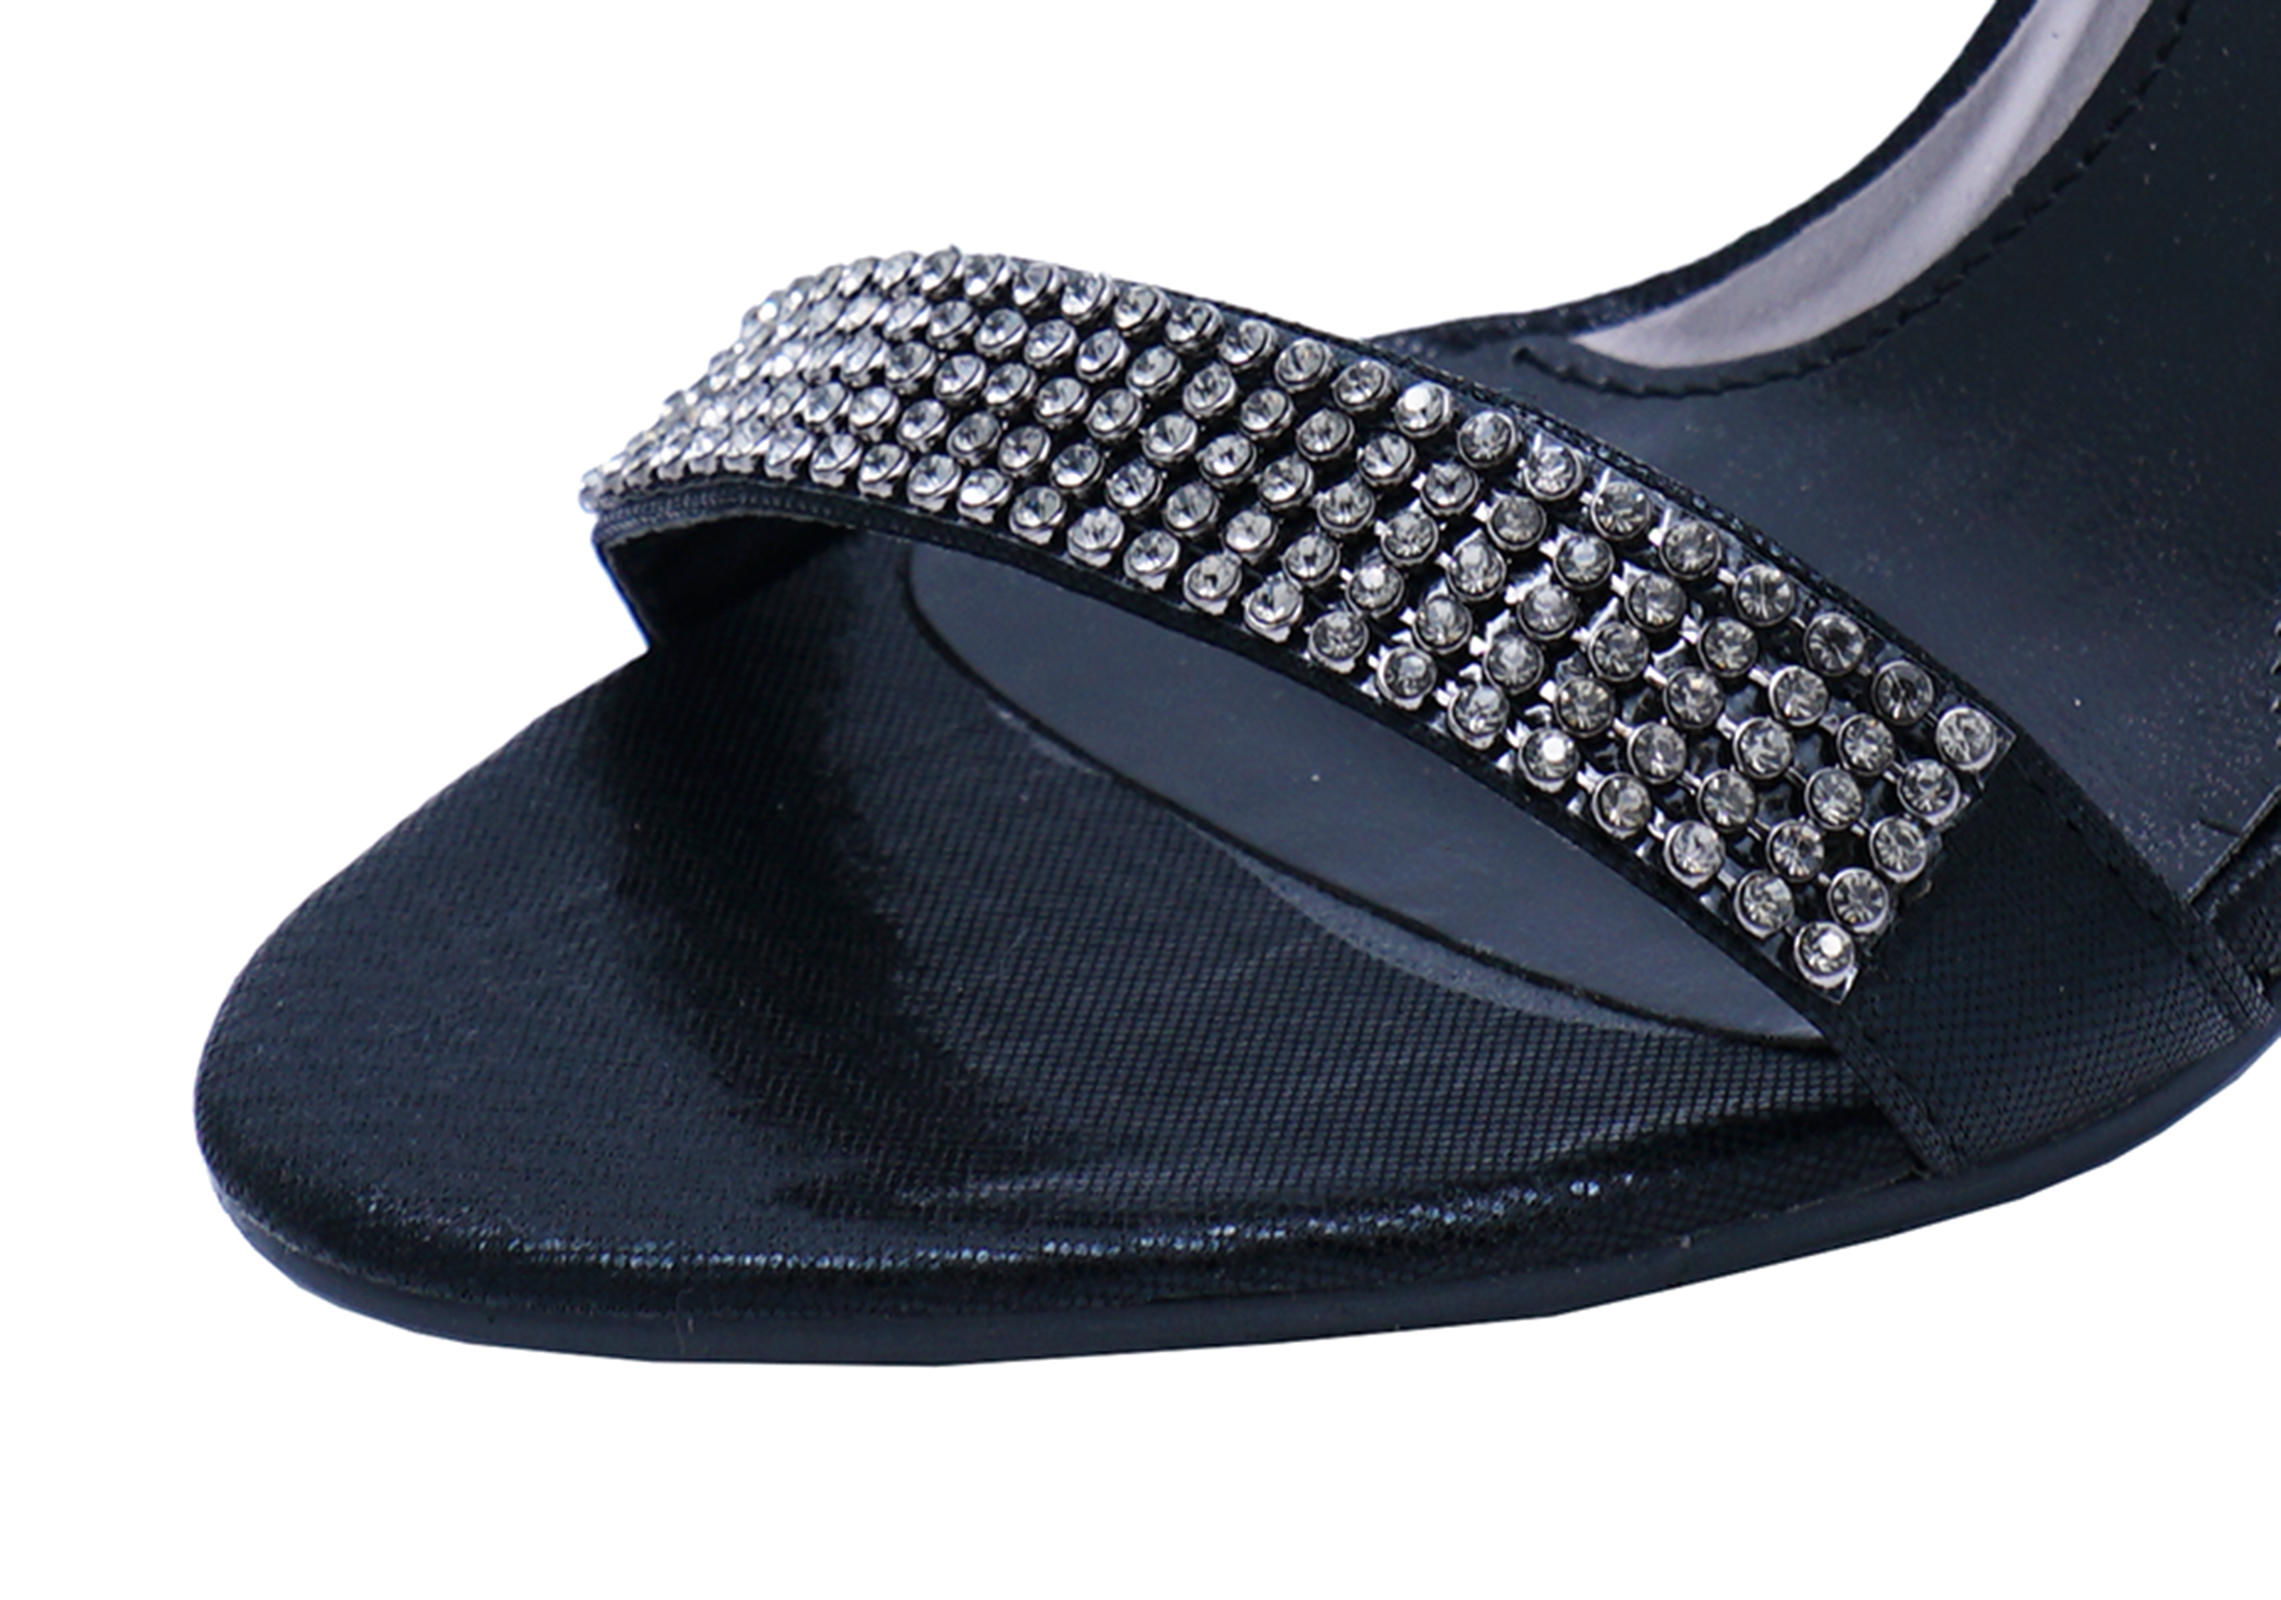 LADIES BLACK ANKLE-STRAP DIAMANTE PEEPTOE SANDALS WEDDING PROM PARTY SHOES 3-8